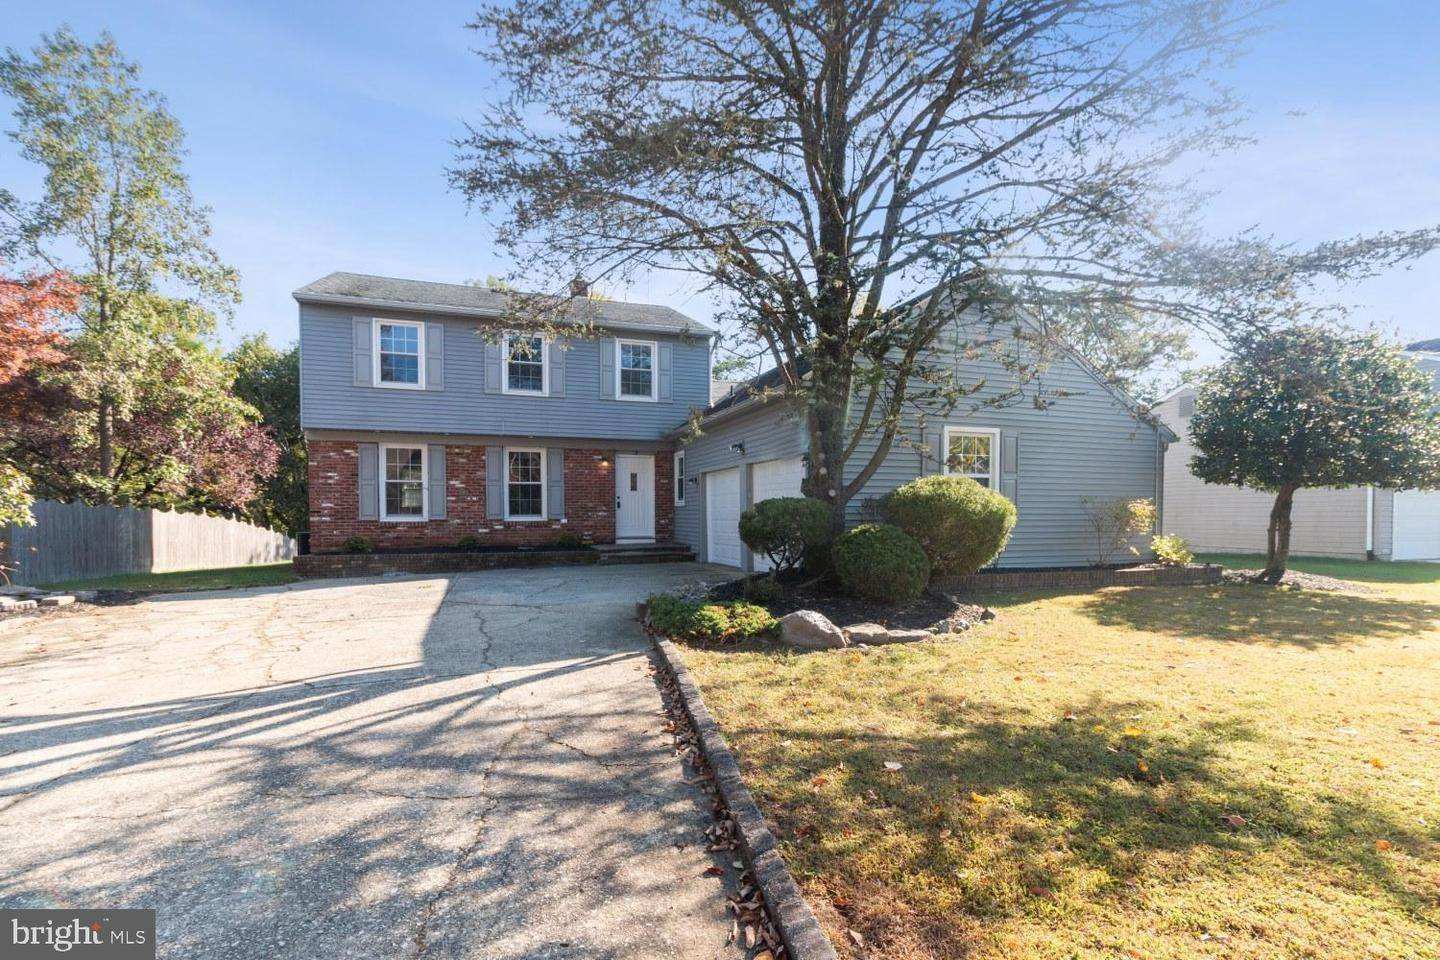 Detached House for Sale at 33 N GREEN ACRE Drive Cherry Hill, New Jersey 08003 United States